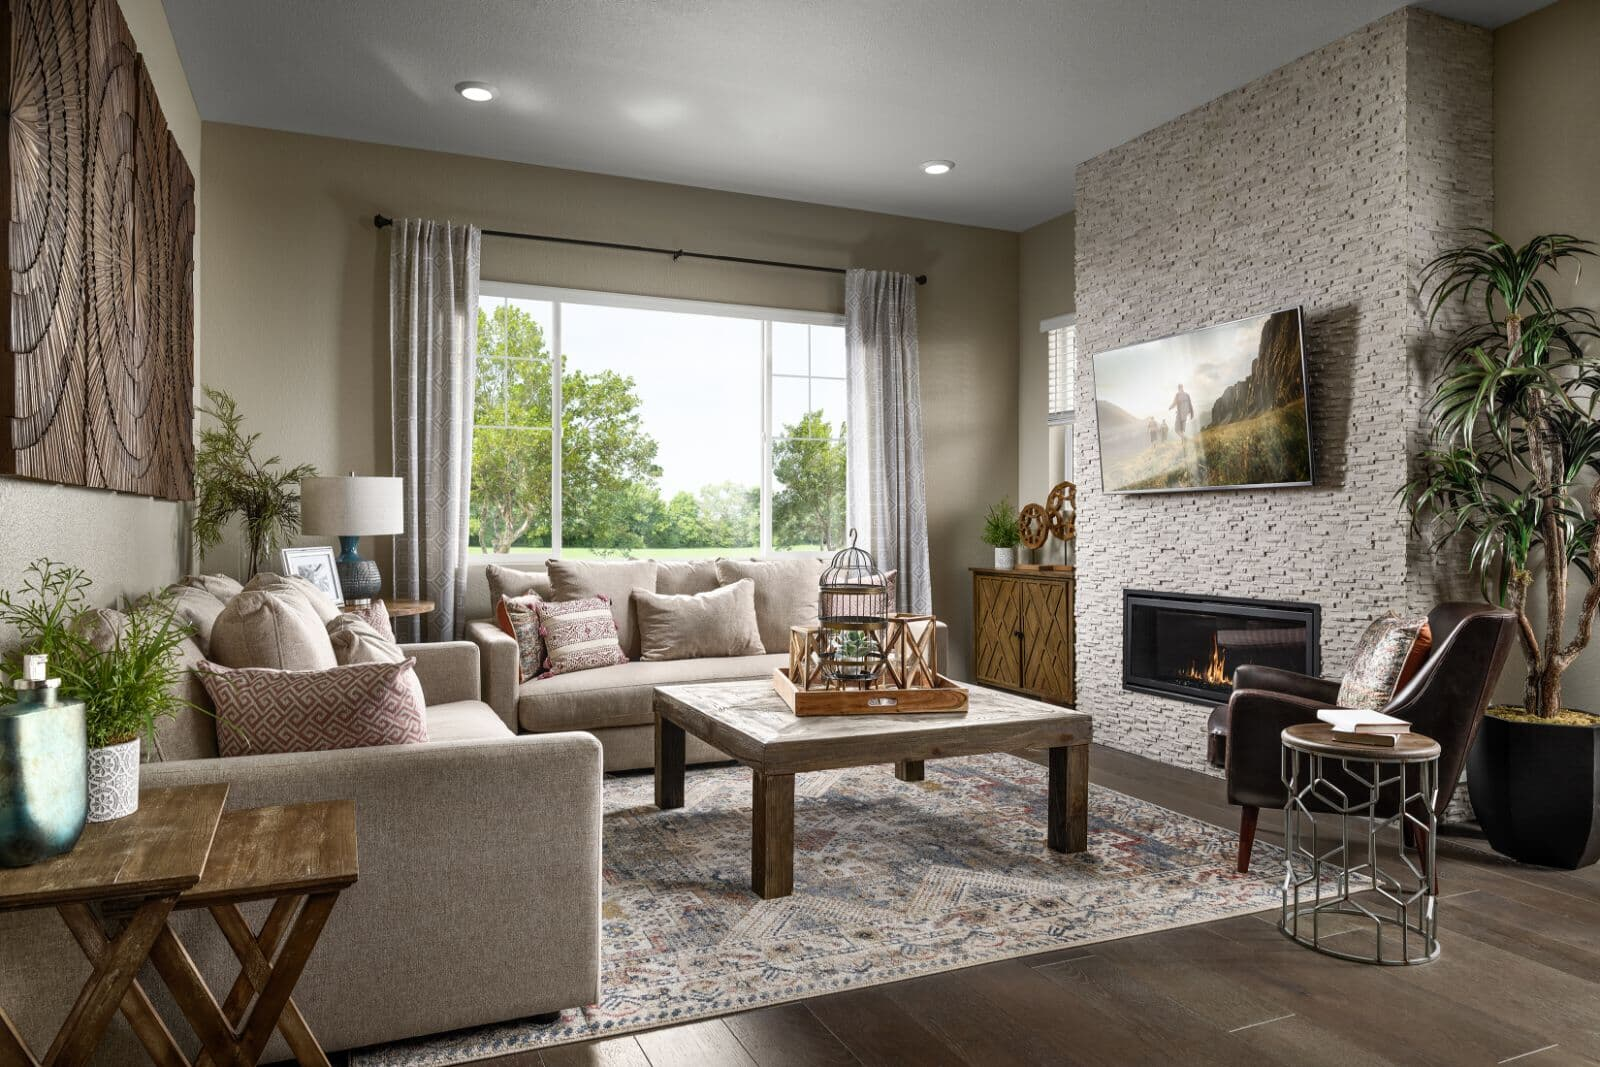 Ovation-Two-Family-Room-Barefoot-Lakes-Denver-Coloraod